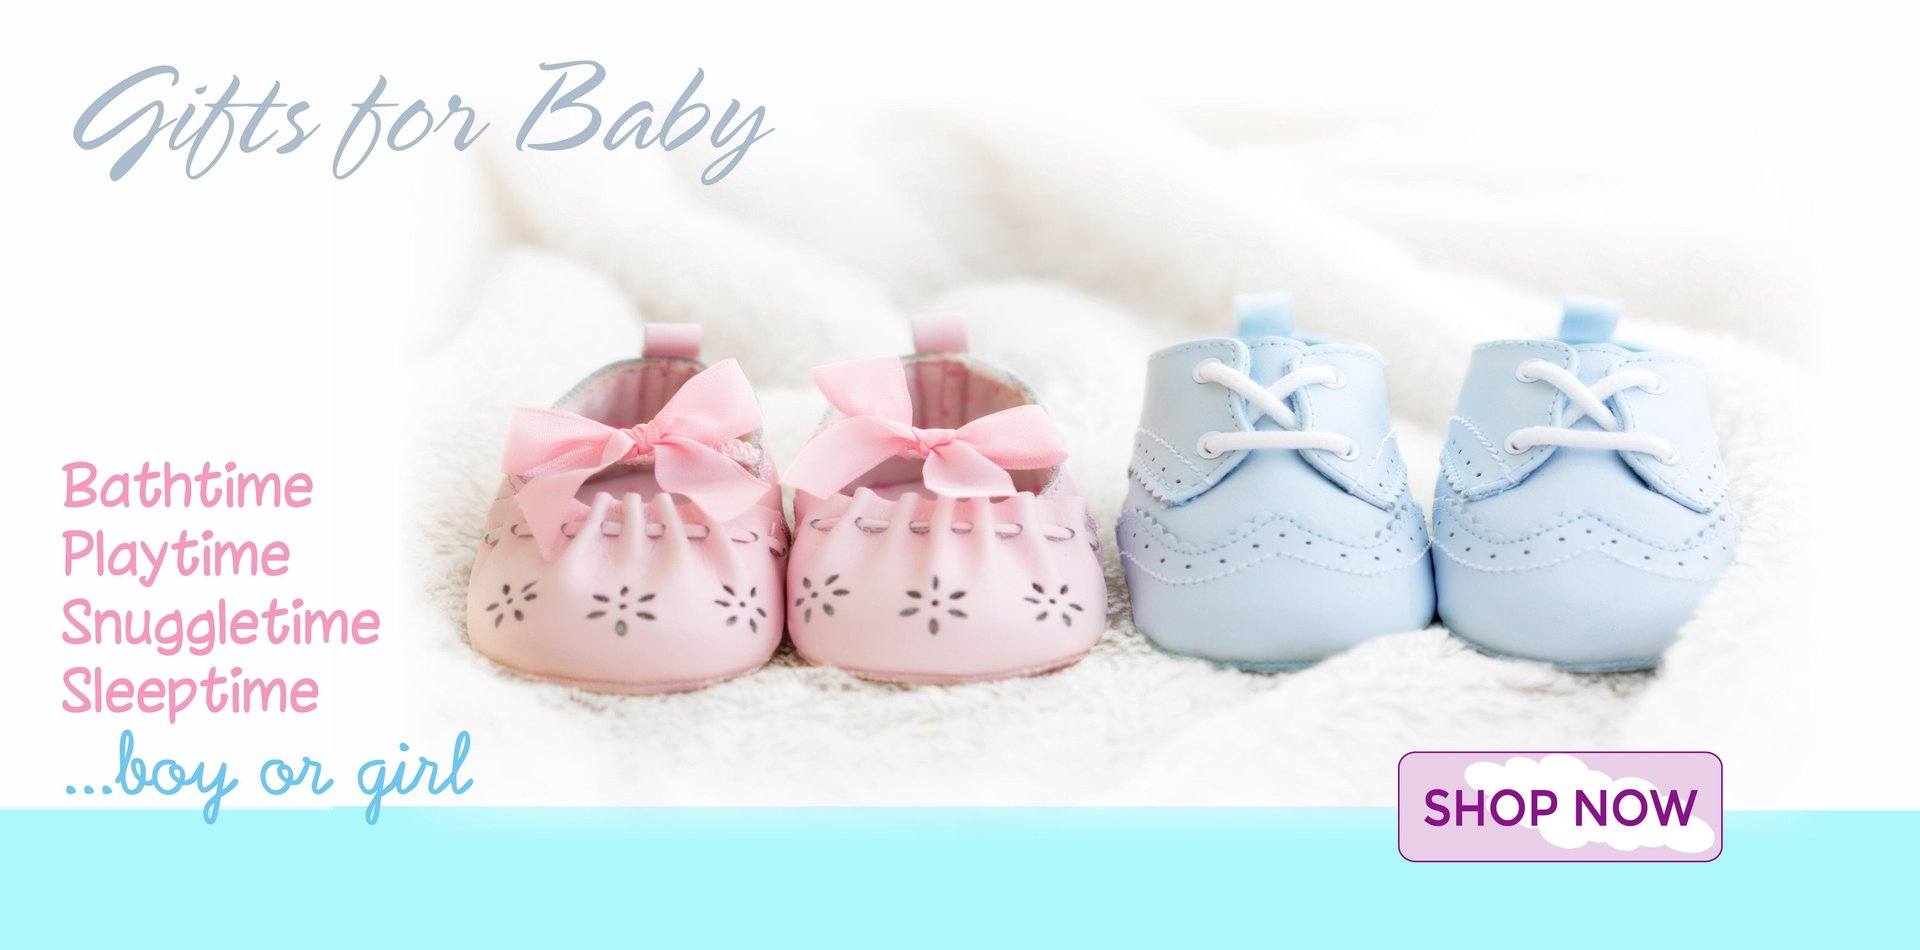 Shop Gifts For Baby